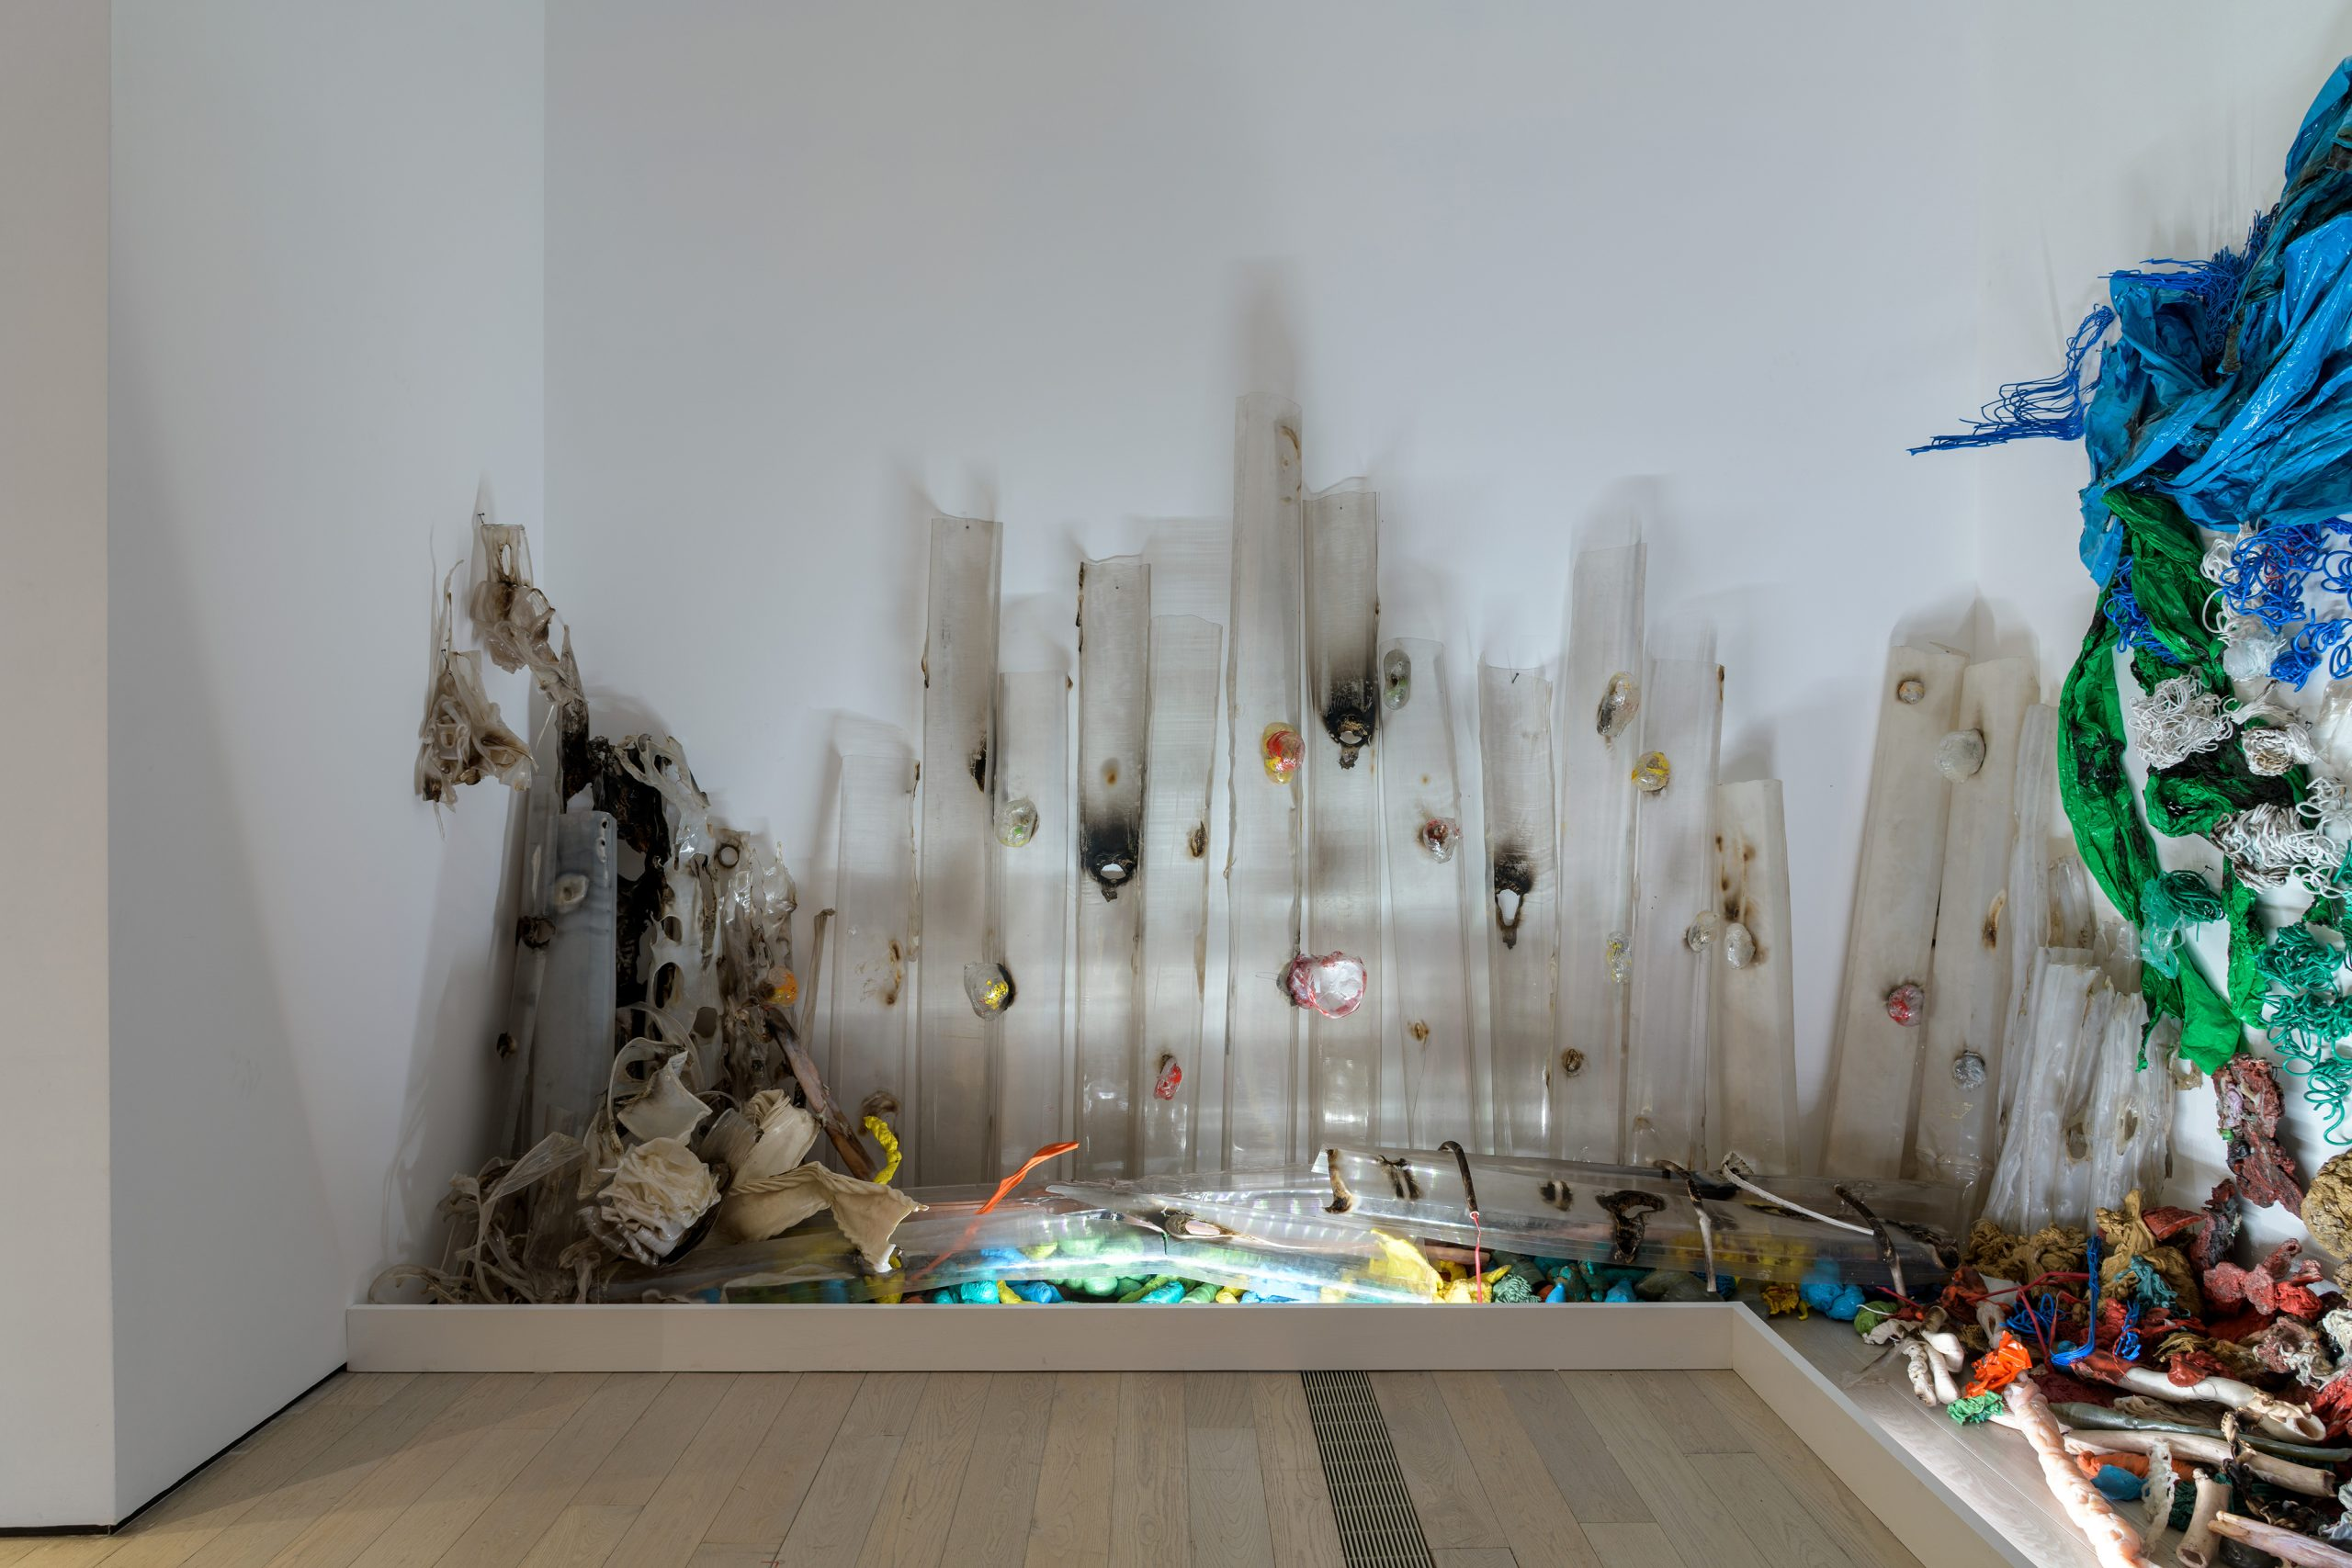 Gu Dexin, Untitled, 1989. Installation view, The Allure of Matter: Material Art from China, Los Angeles County Museum of Art, 2019–20. Photo courtesy of Museum Associates/LACMA.